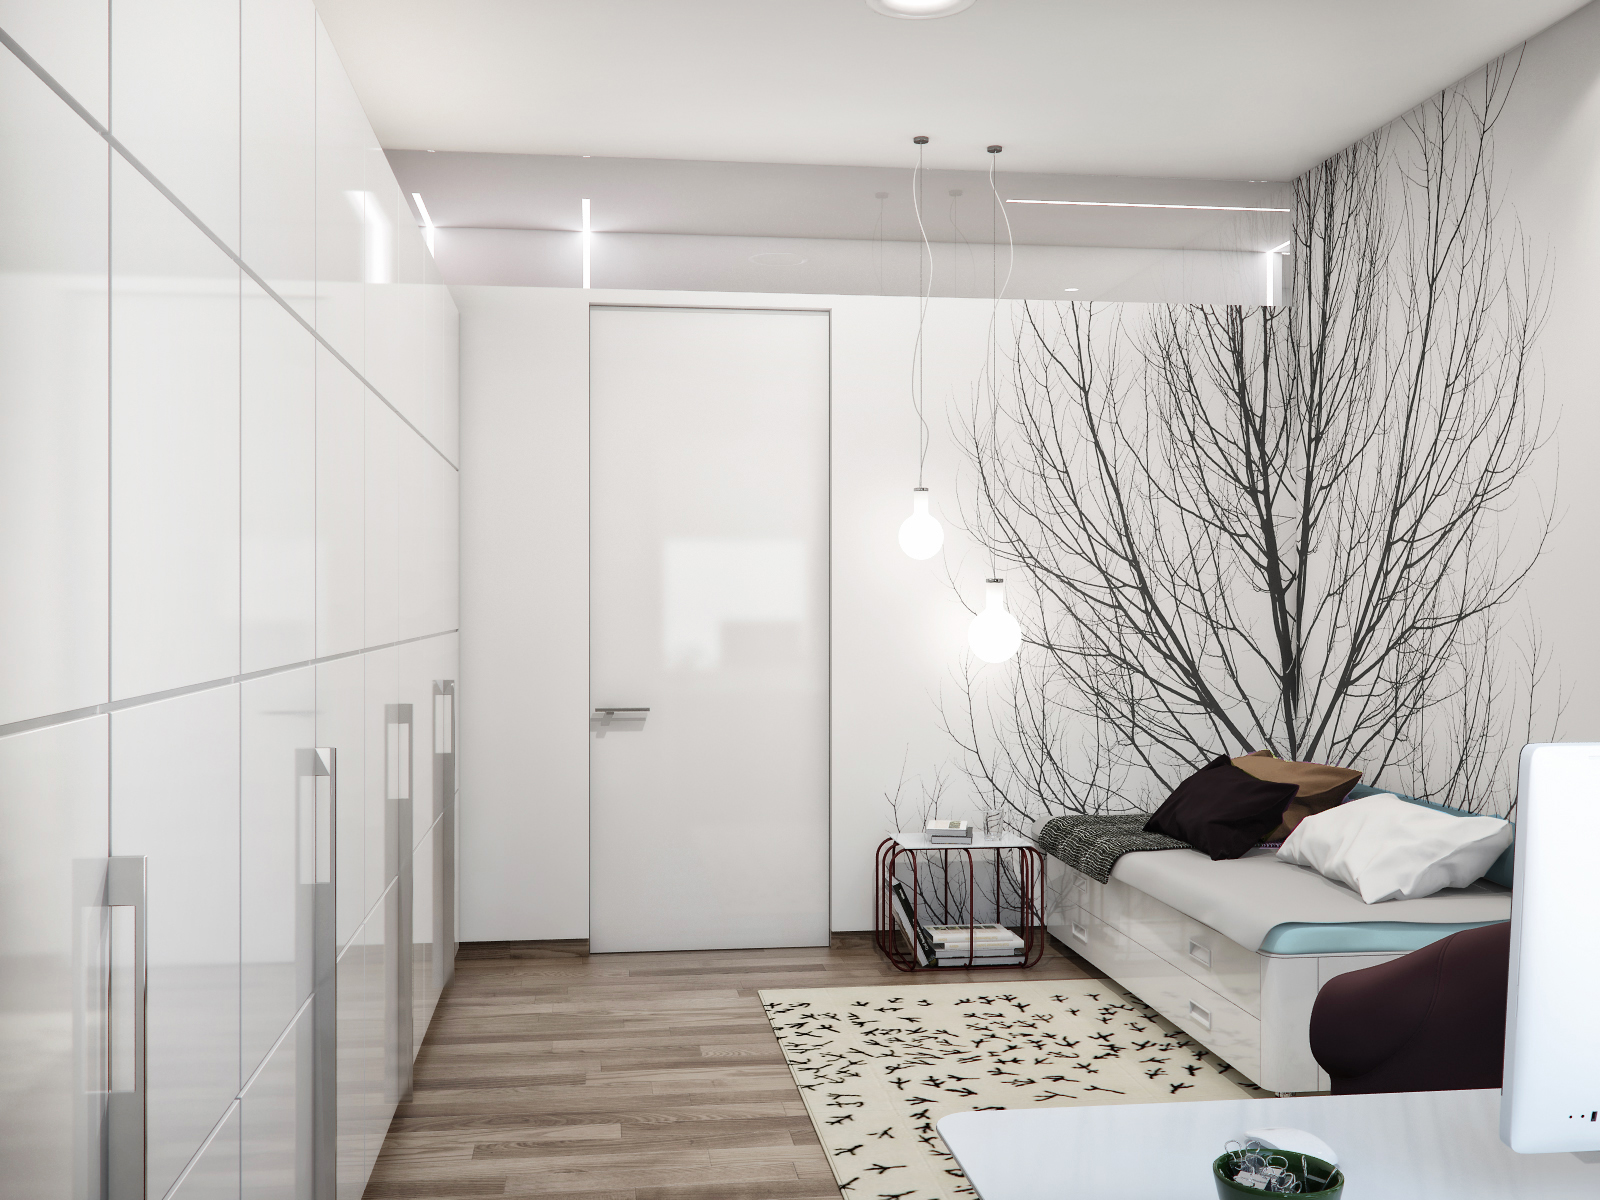 Elegant Big Modern Cream Bedroom Closets Furniture With White And Gold Buy Bedroom Closet Furniture White And Gold Bedroom Furniture Wardrobe Lift